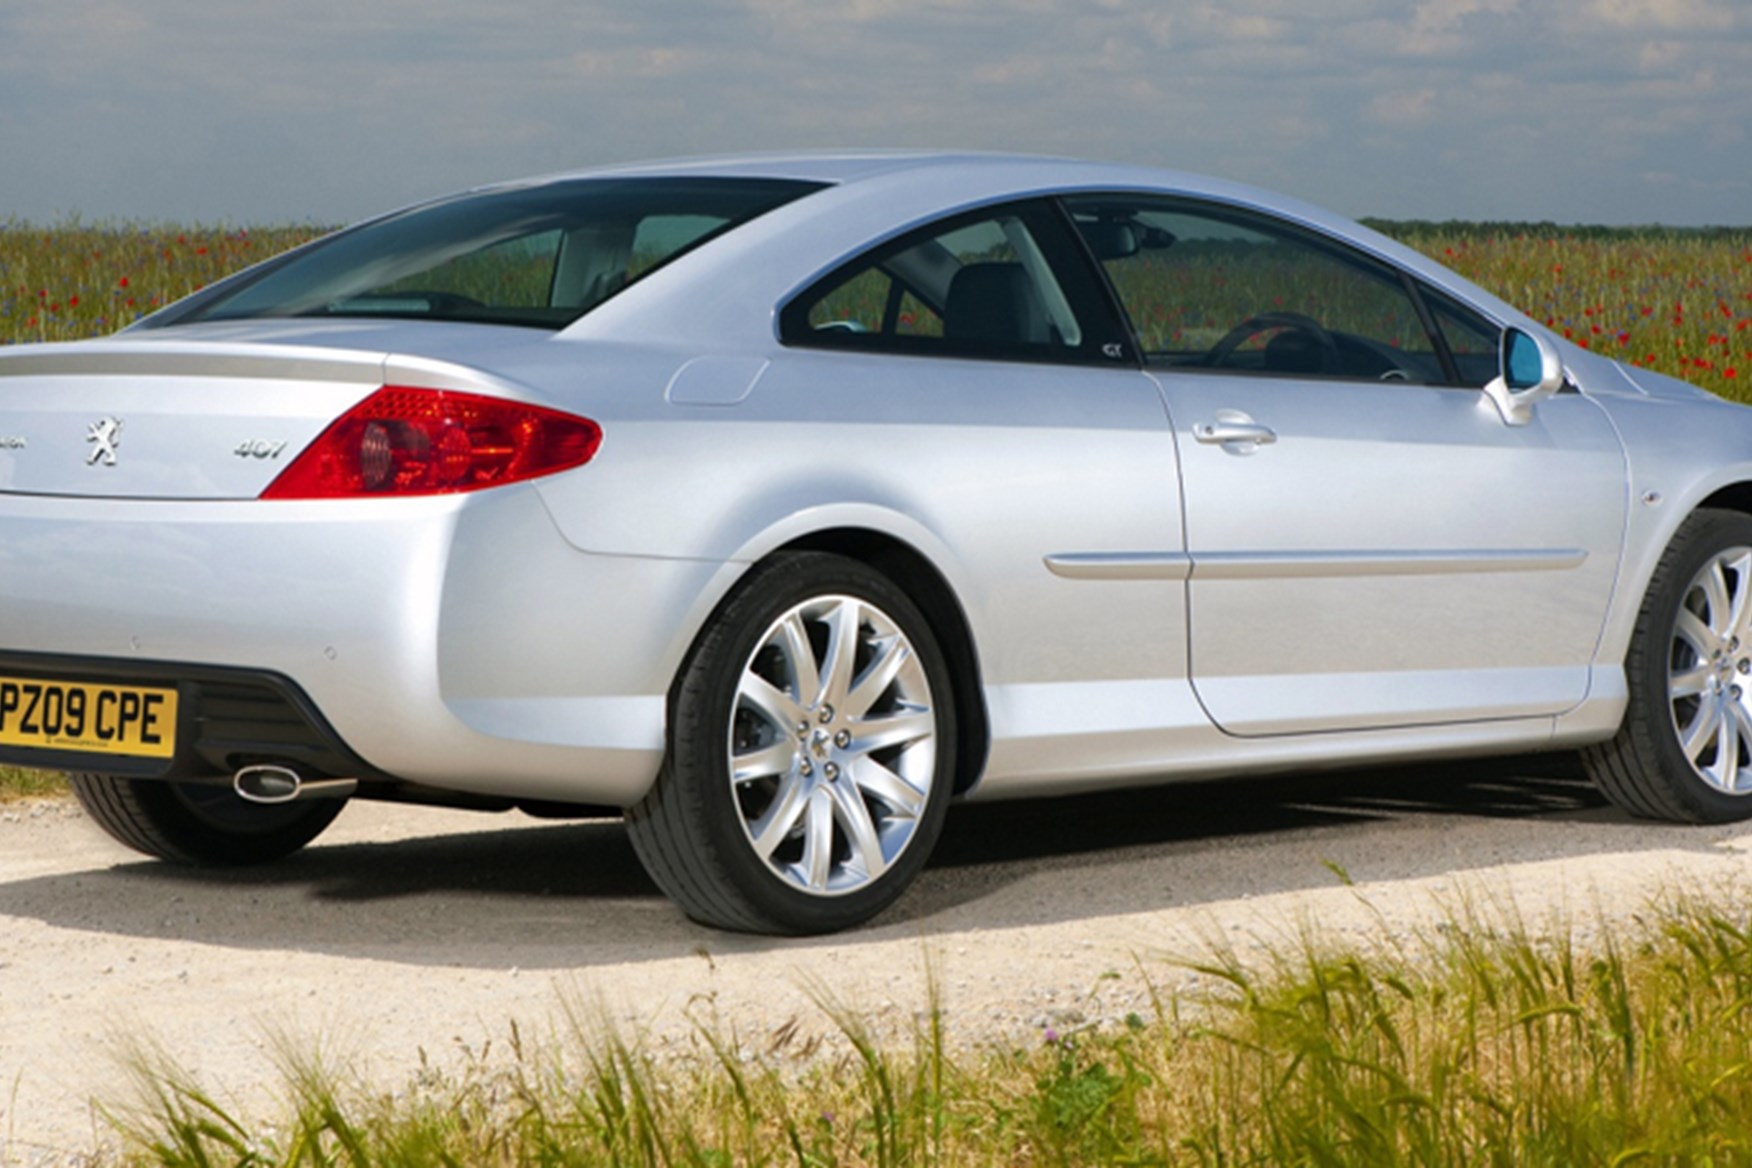 407 coupe owners manual array peugeot 407 coupe 2009 drops petrol engines car magazine rh carmagazine fandeluxe Choice Image